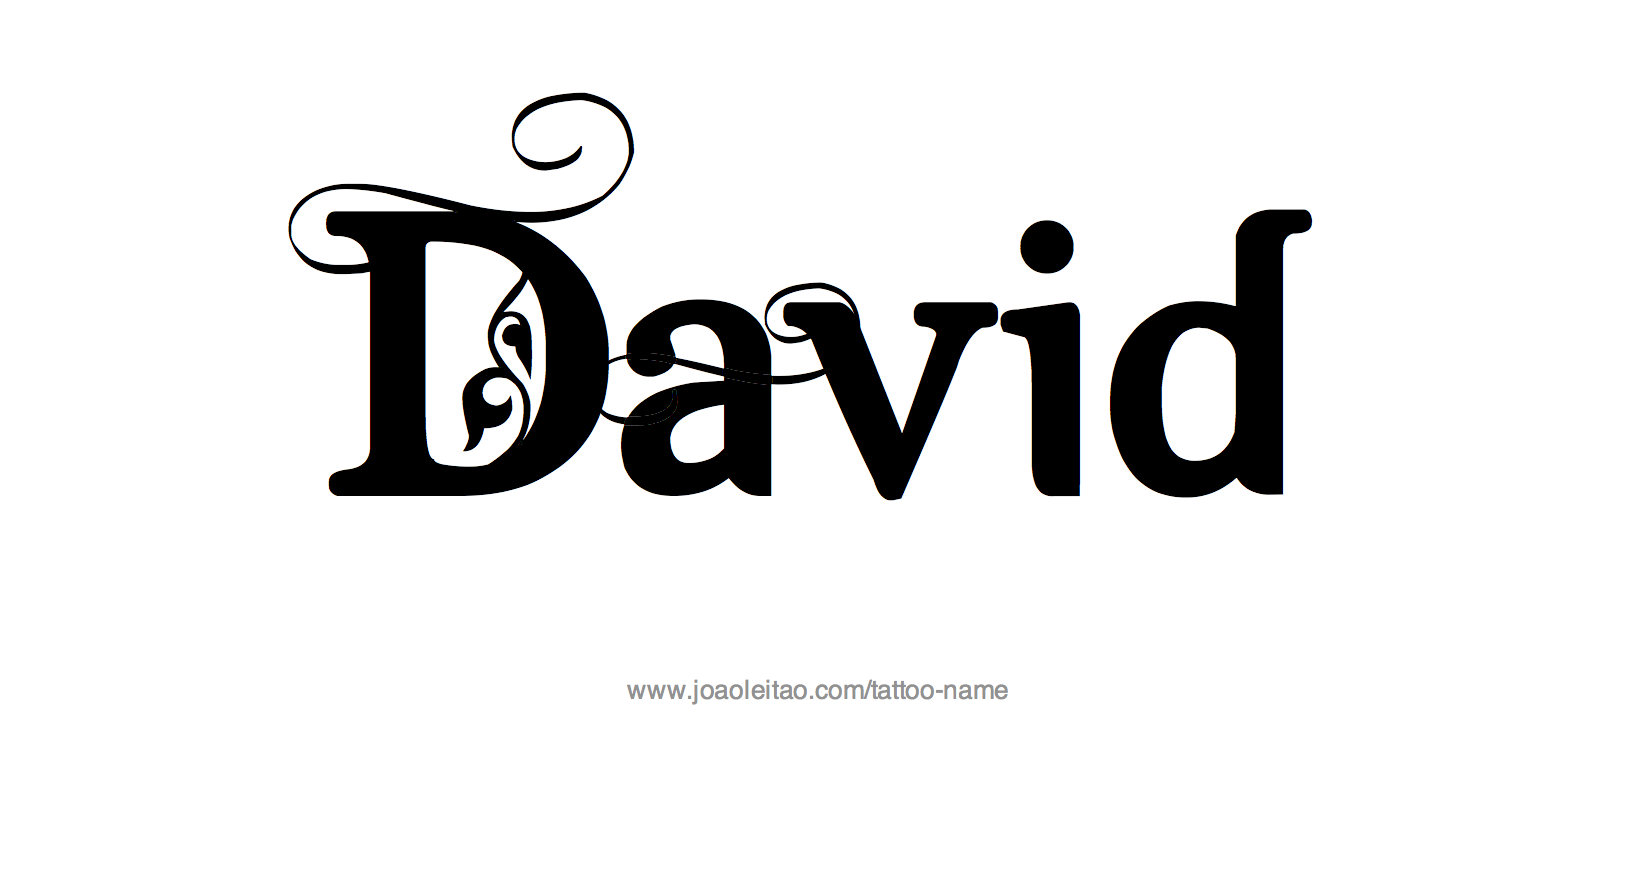 David Name Tattoo Designs Name Tattoos Name Tattoo Designs Name Tattoo